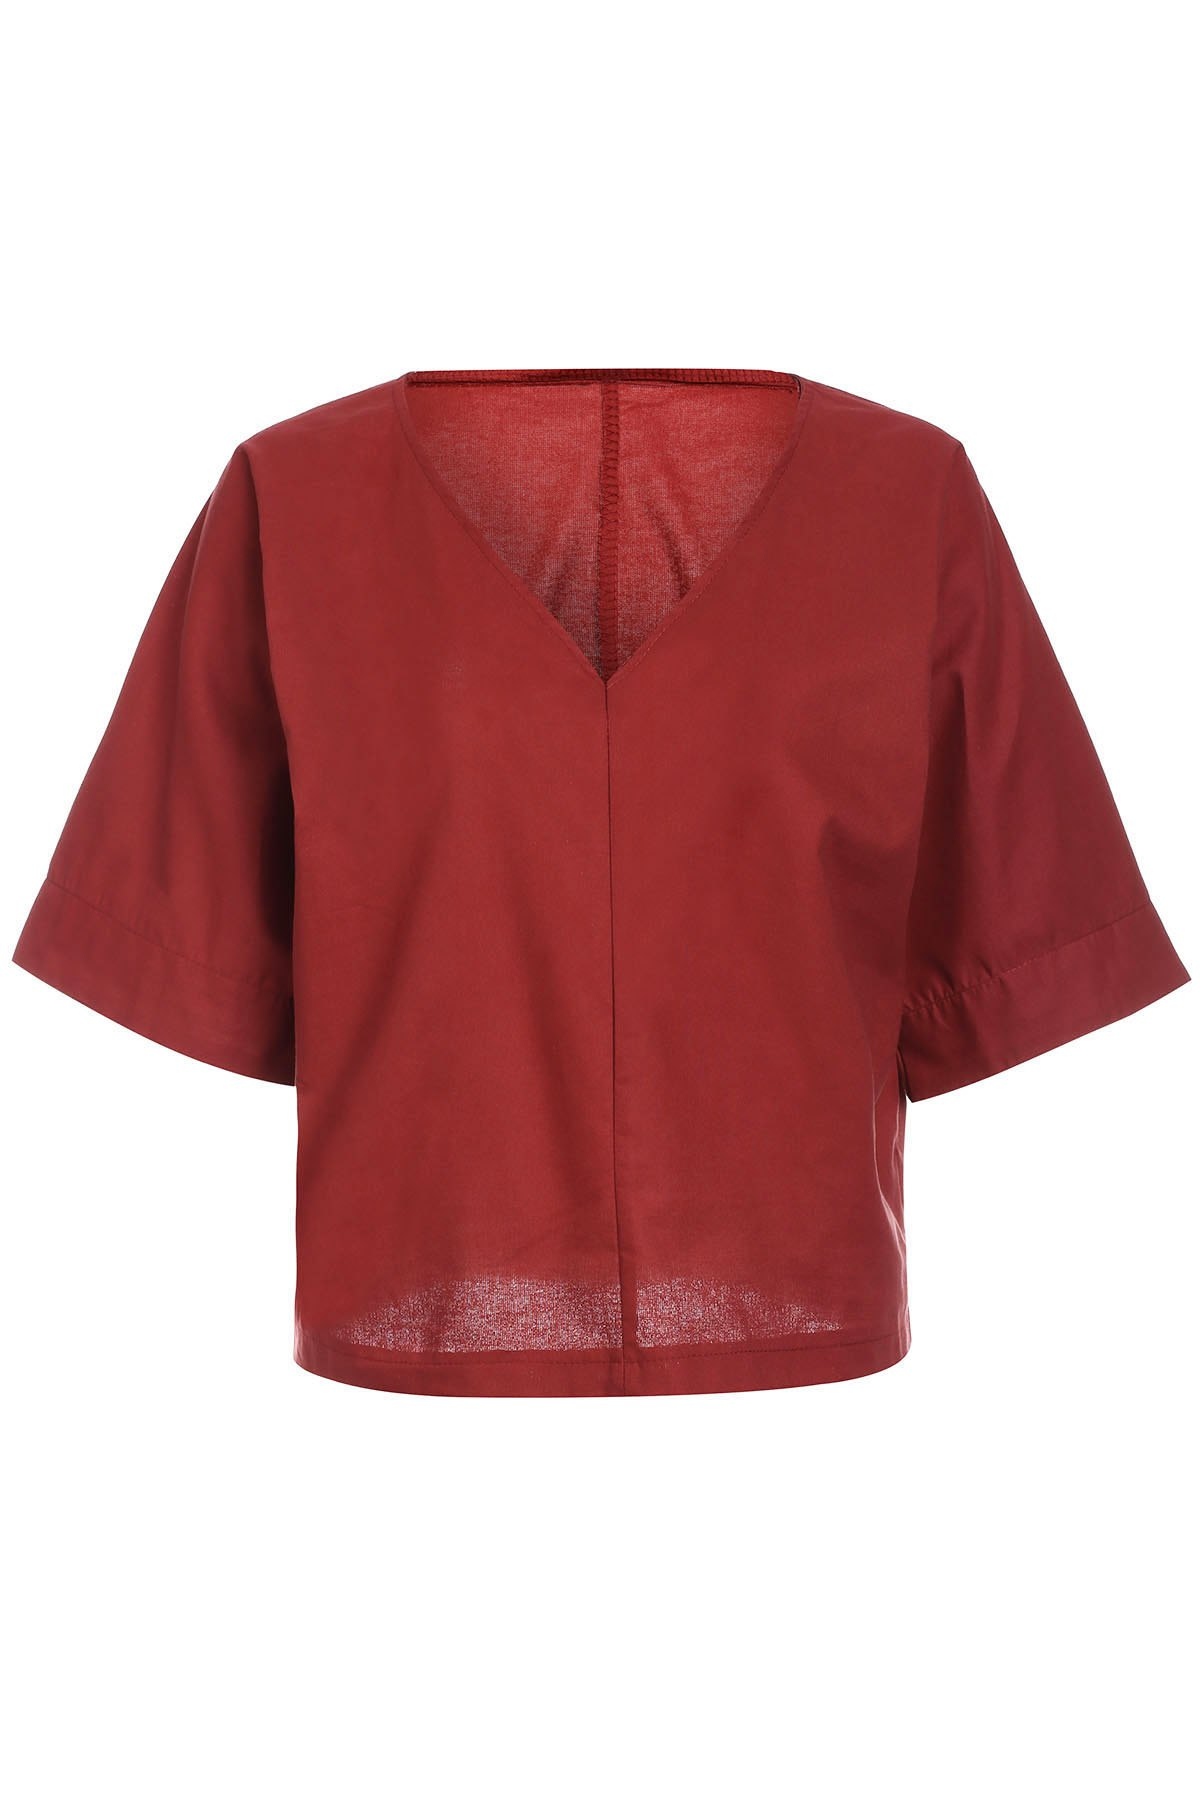 Brief Style 1/2 Sleeve V-Neck Solid Color Loose-Fitting Women's Blouse - BRICK RED L